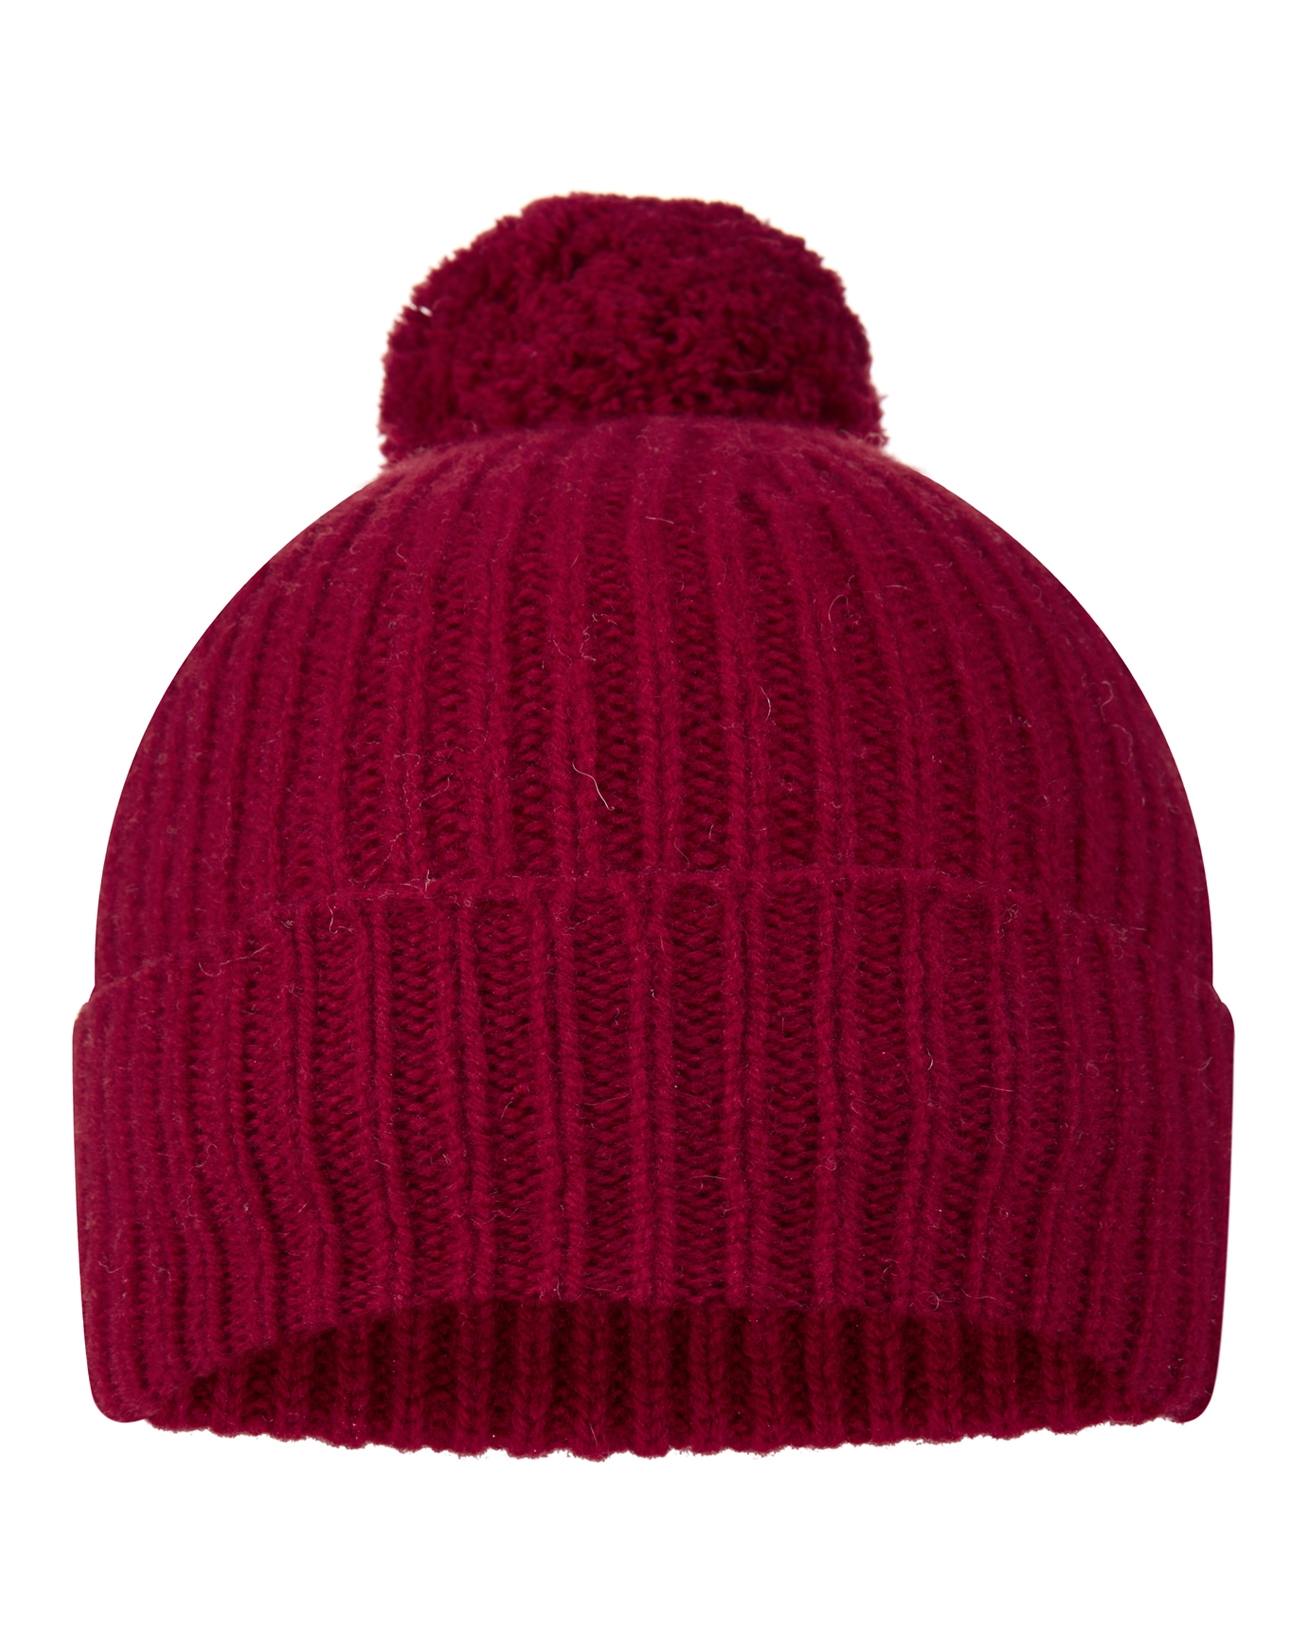 Lambswool Ribbed Pom Pom Hat